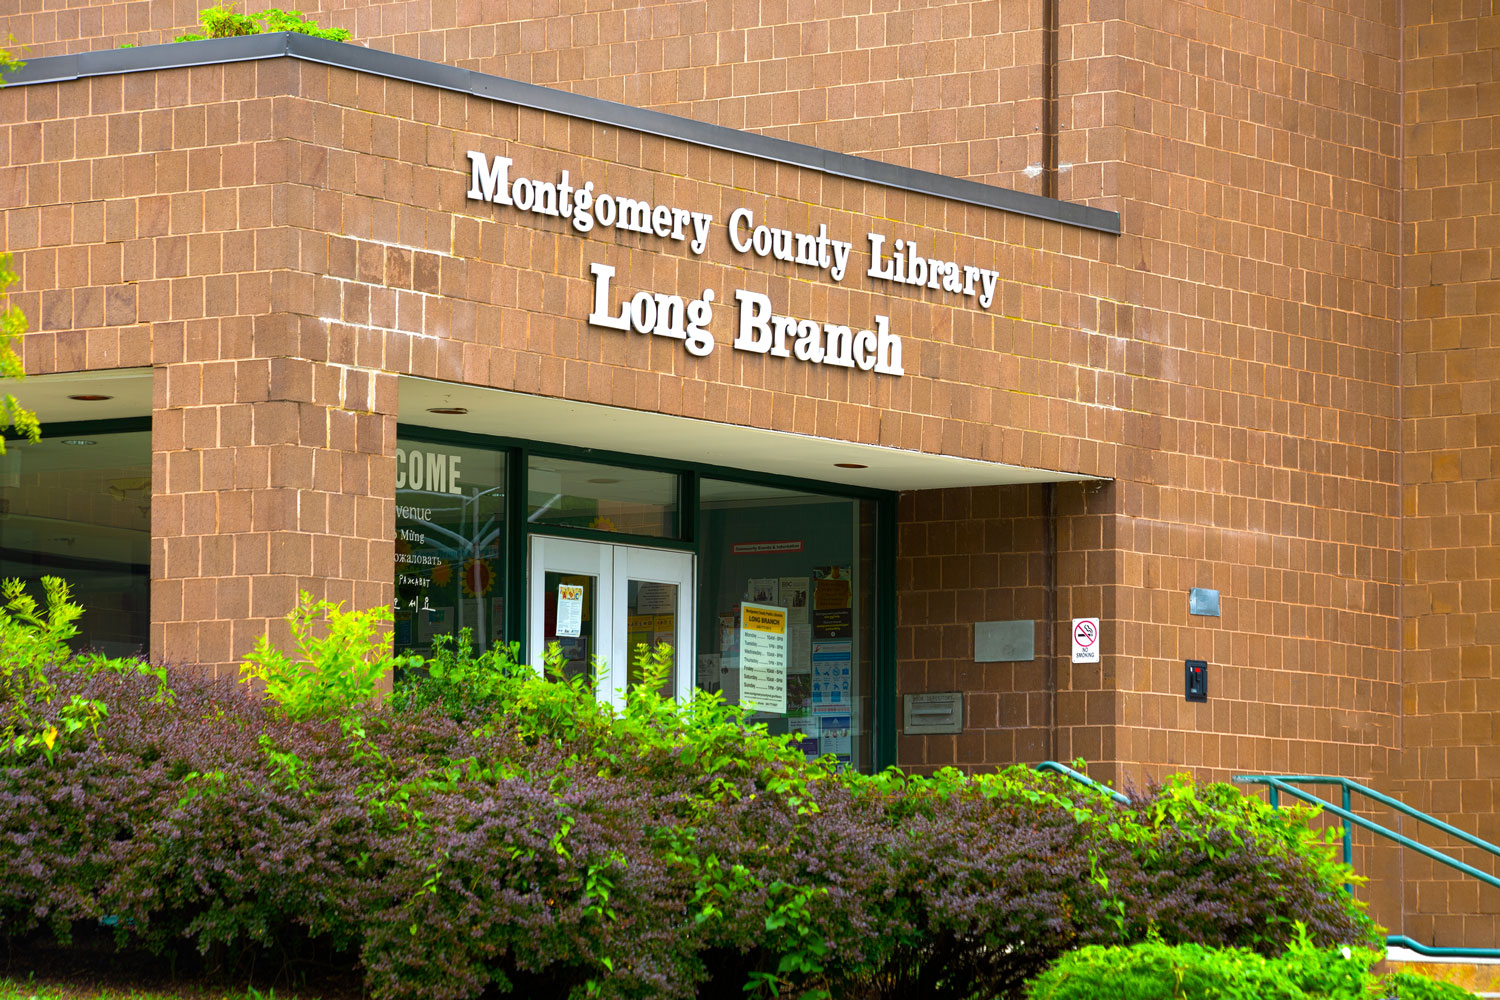 Montgomery County Long Branch Library across the street from Goodacre & Pine Ridge Apartments